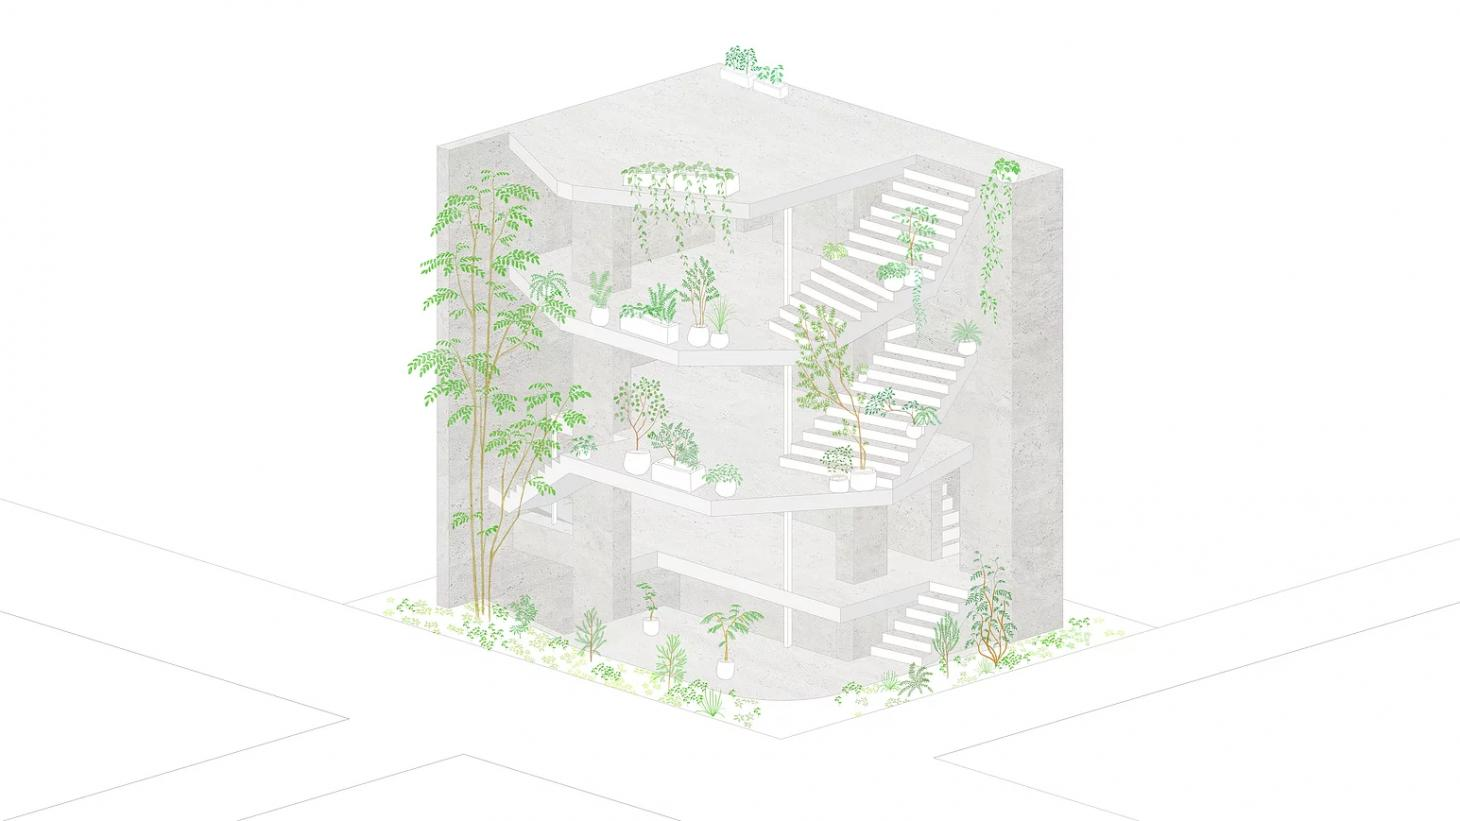 Japanese architecture drawing Tokyo house with pen plan and exposed spaces